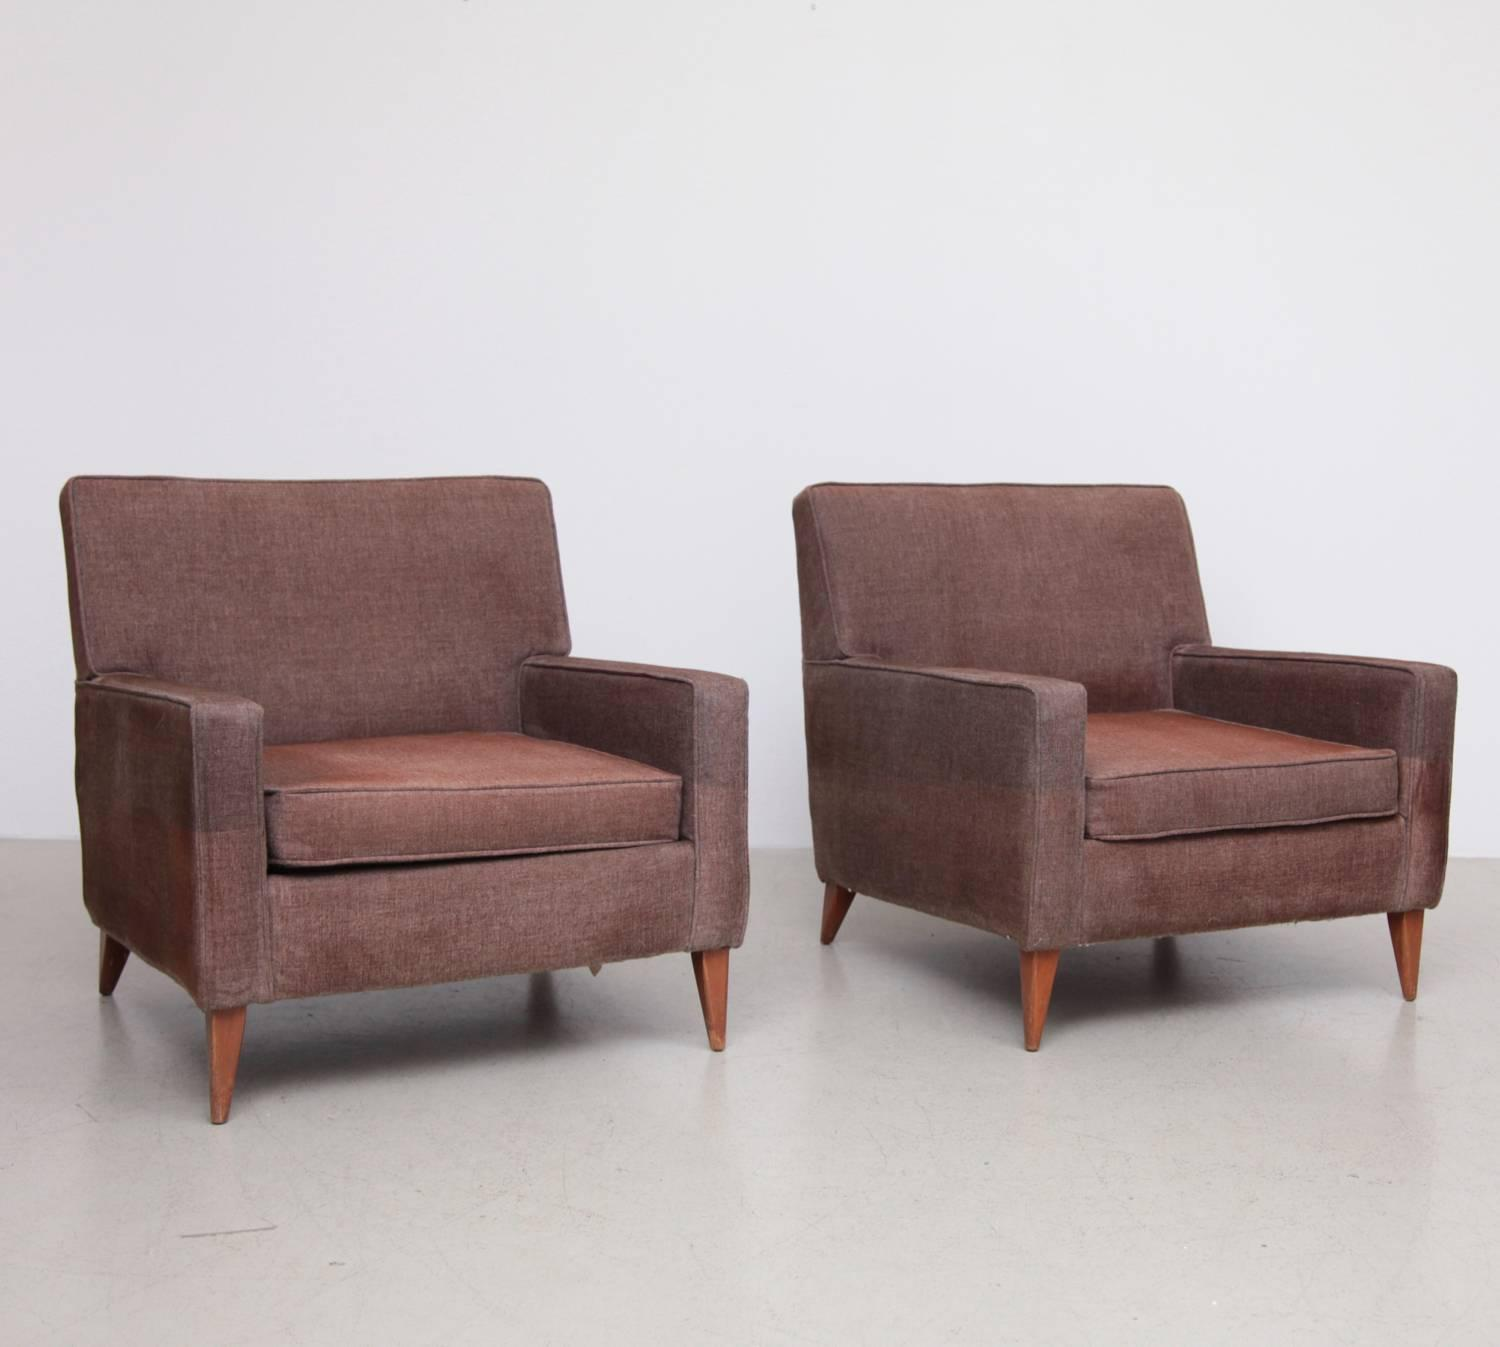 Pair of Paul McCobb Club or Lounge Chairs, circa 1950, Reupholstery Needed For Sale at 1stdibs